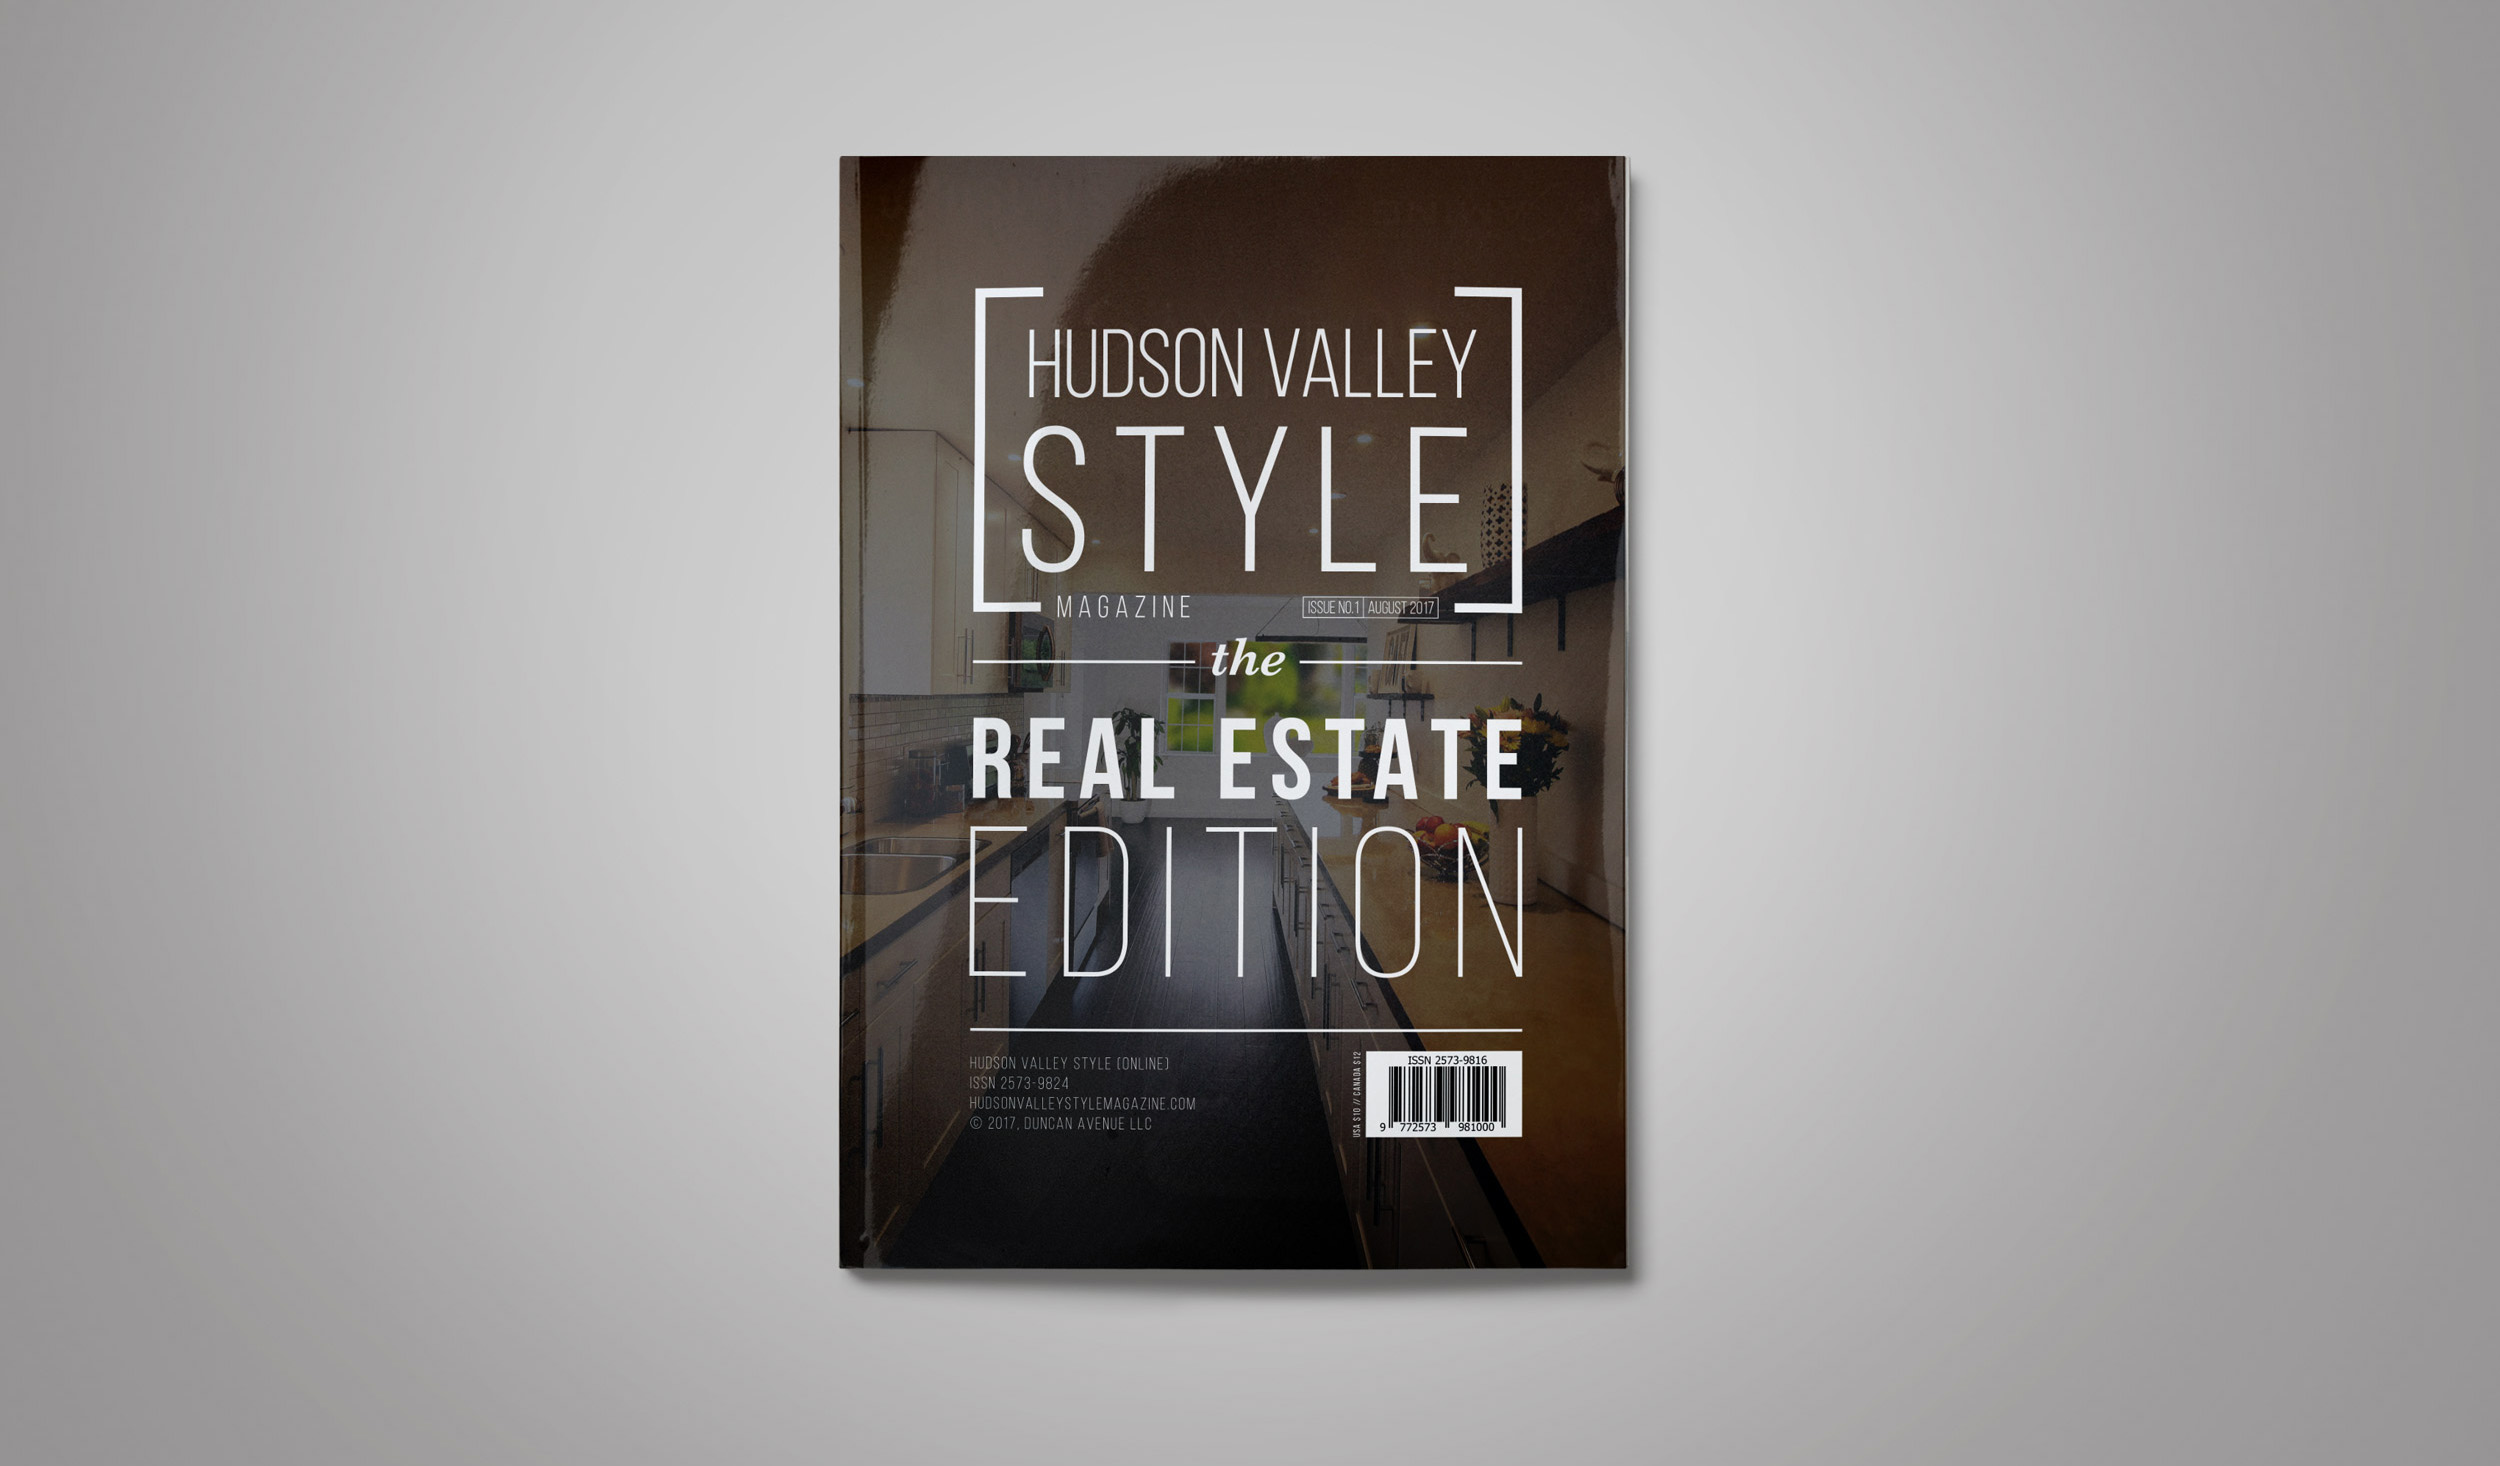 Inaugural Issue of Hudson Valley Style Magazine: The Real Estate Edition